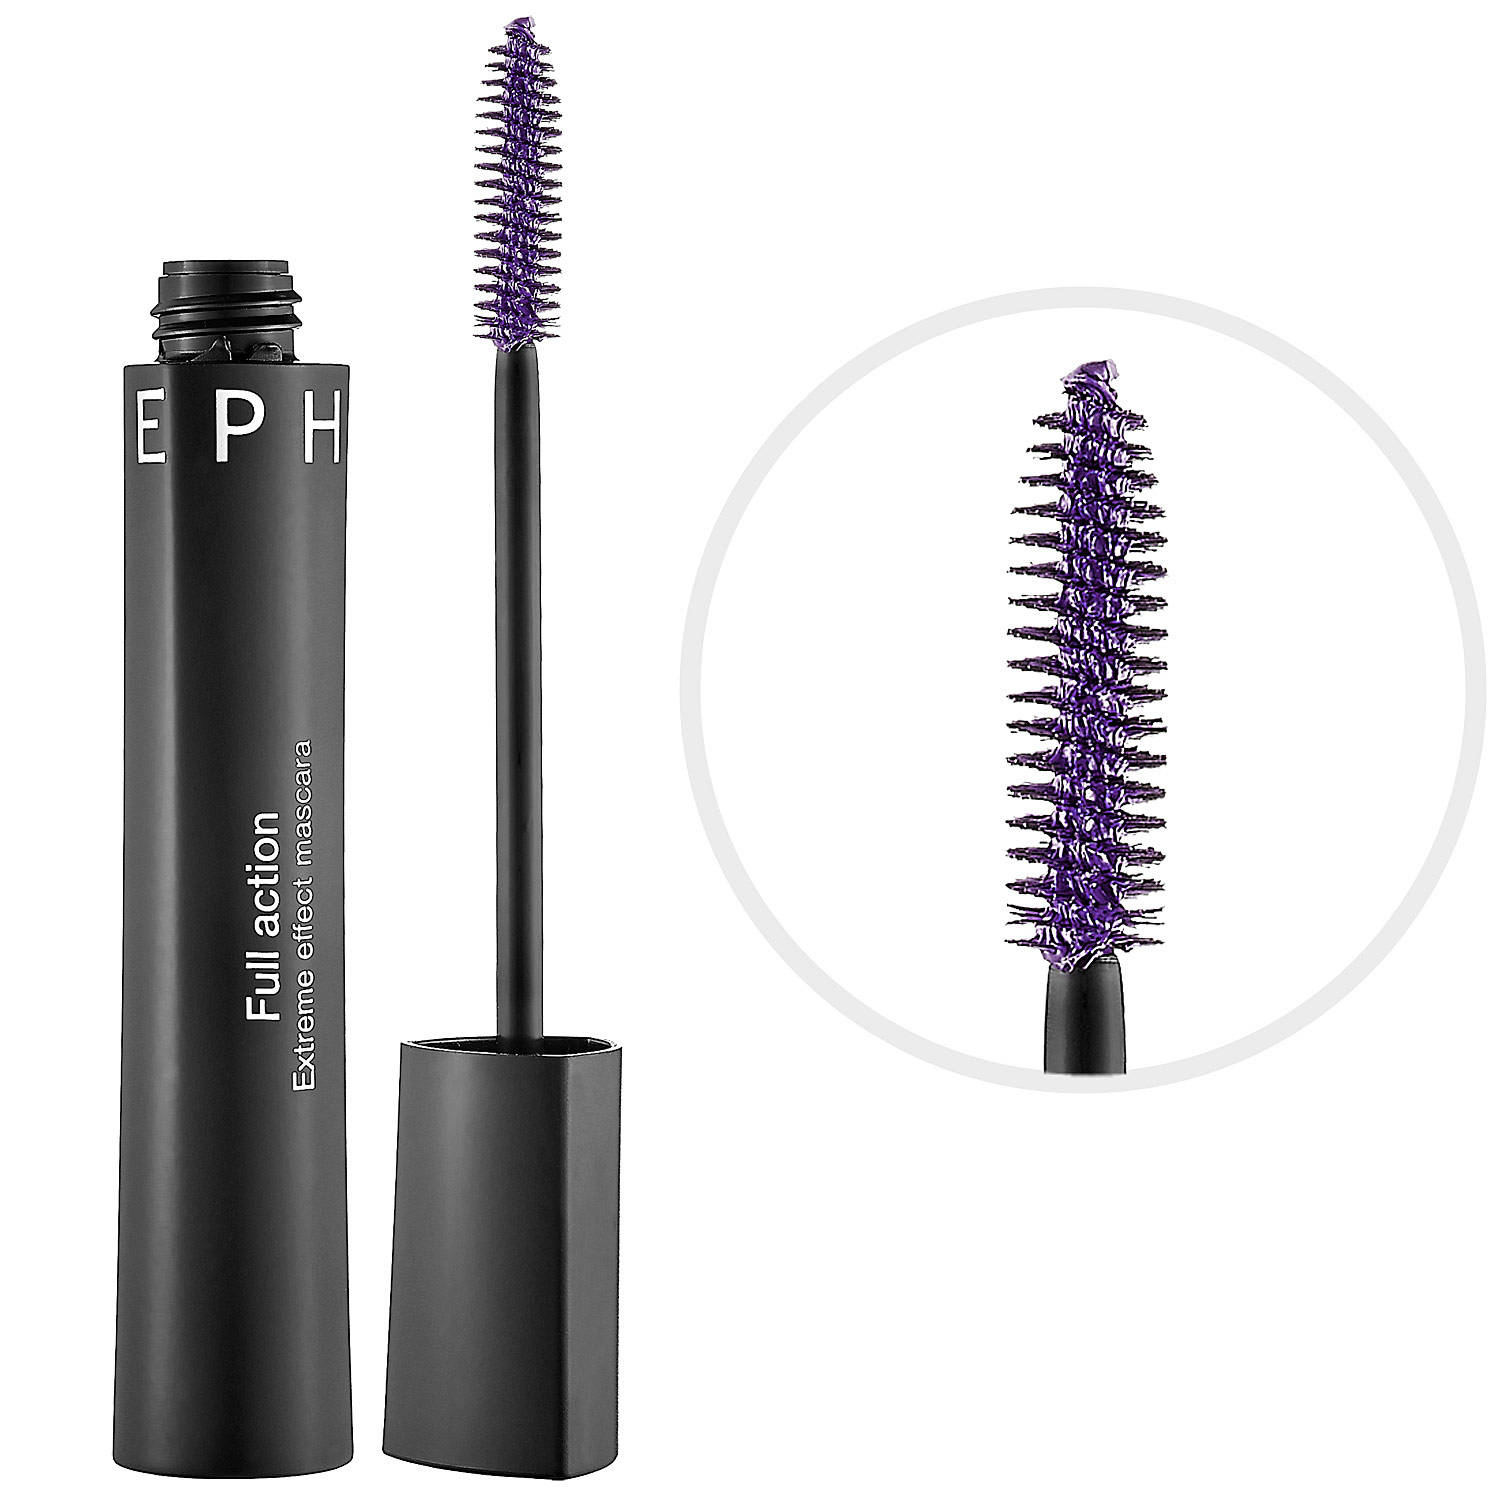 sephora full action purple